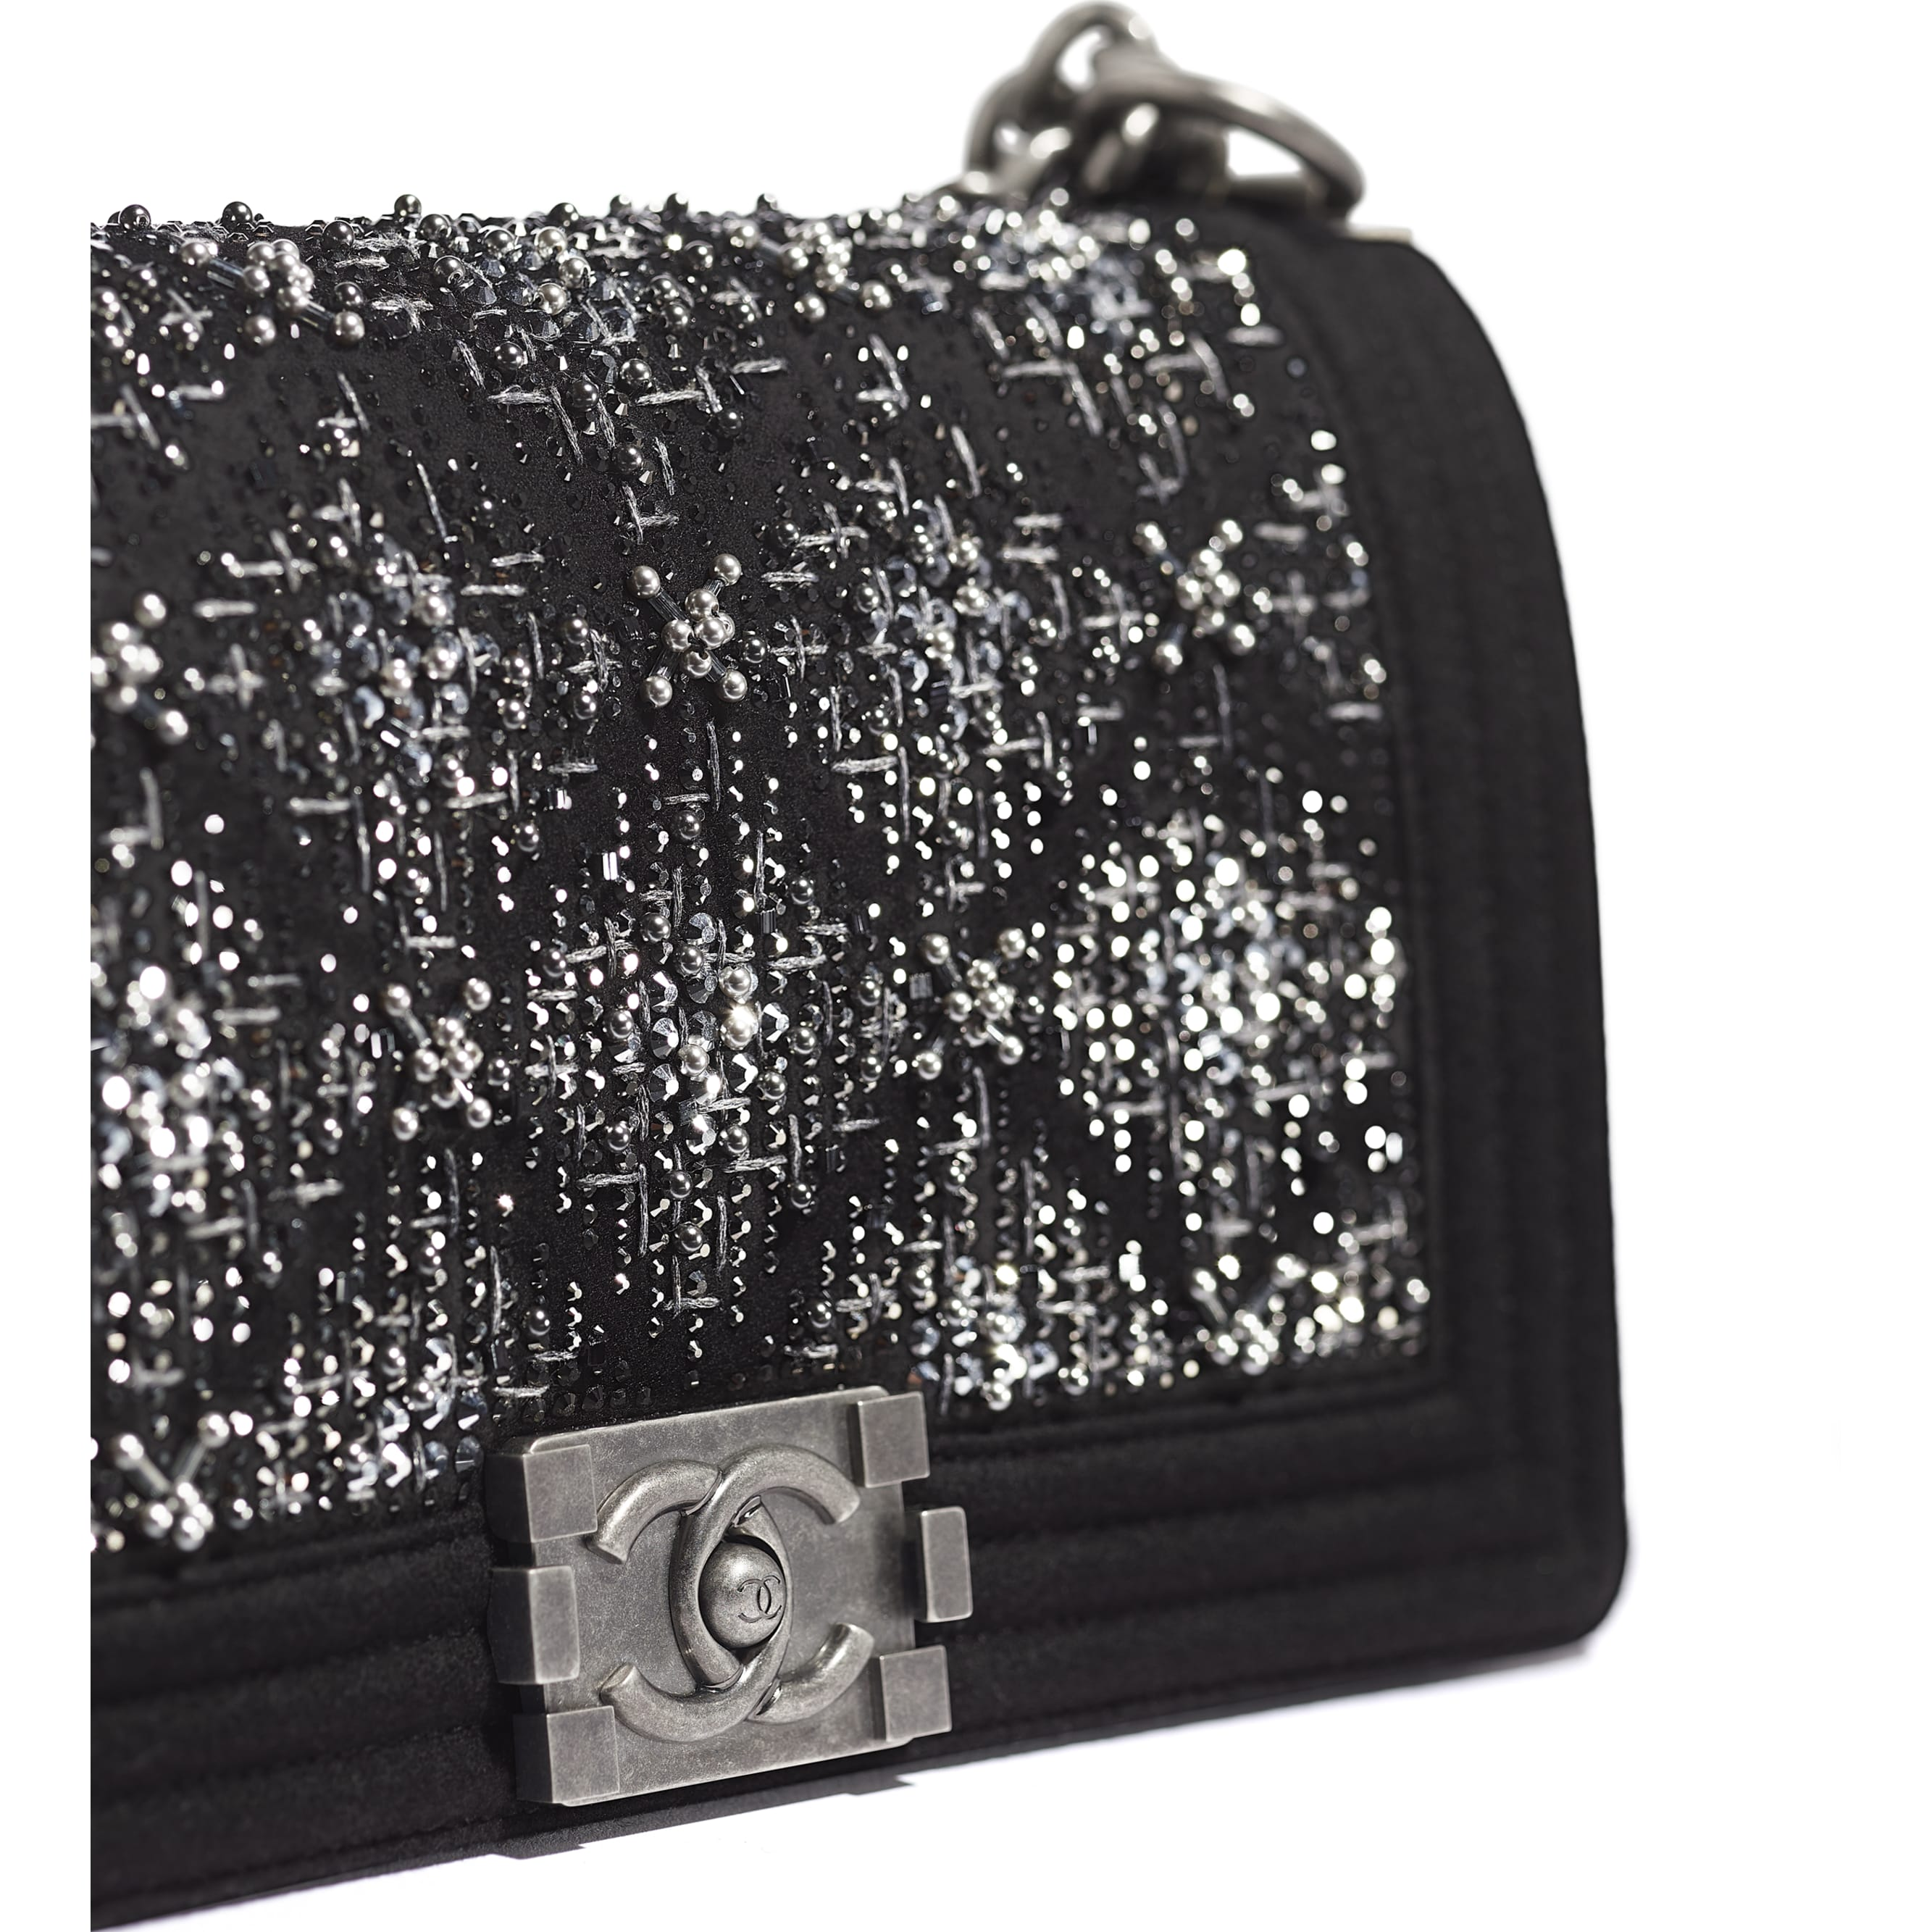 BOY CHANEL Handbag - Black - Wool, Strass & Ruthenium-Finish Metal - Extra view - see standard sized version